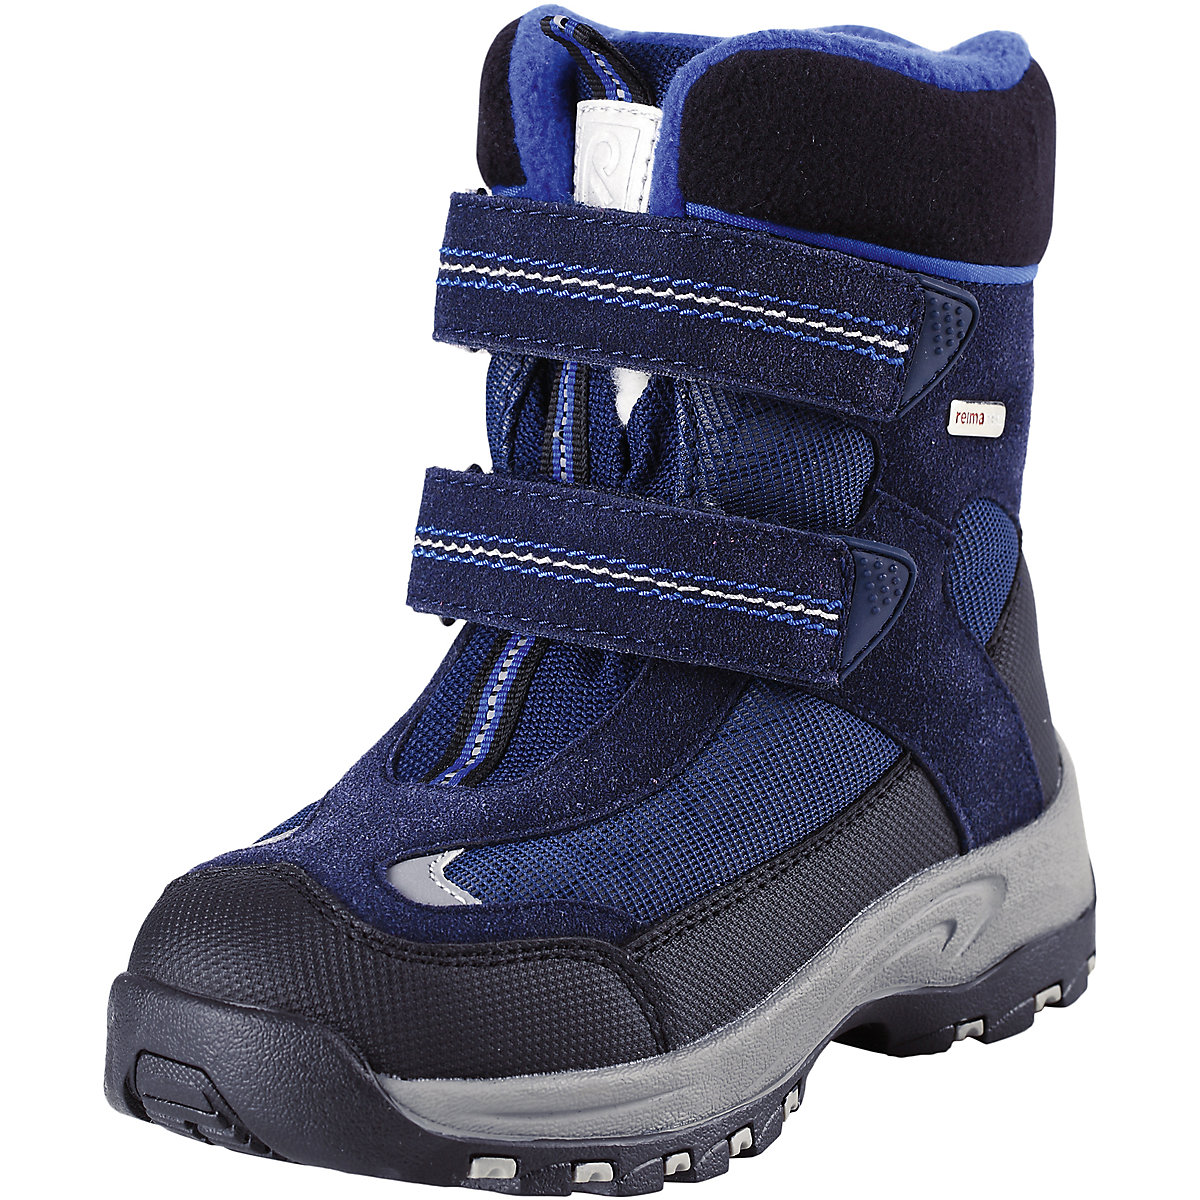 REIMA Boots 8624963 for boys winter boy  children shoes men military tactical boots special force desert ankle combat boots safety outdoor shoes plus new ultralight army boot